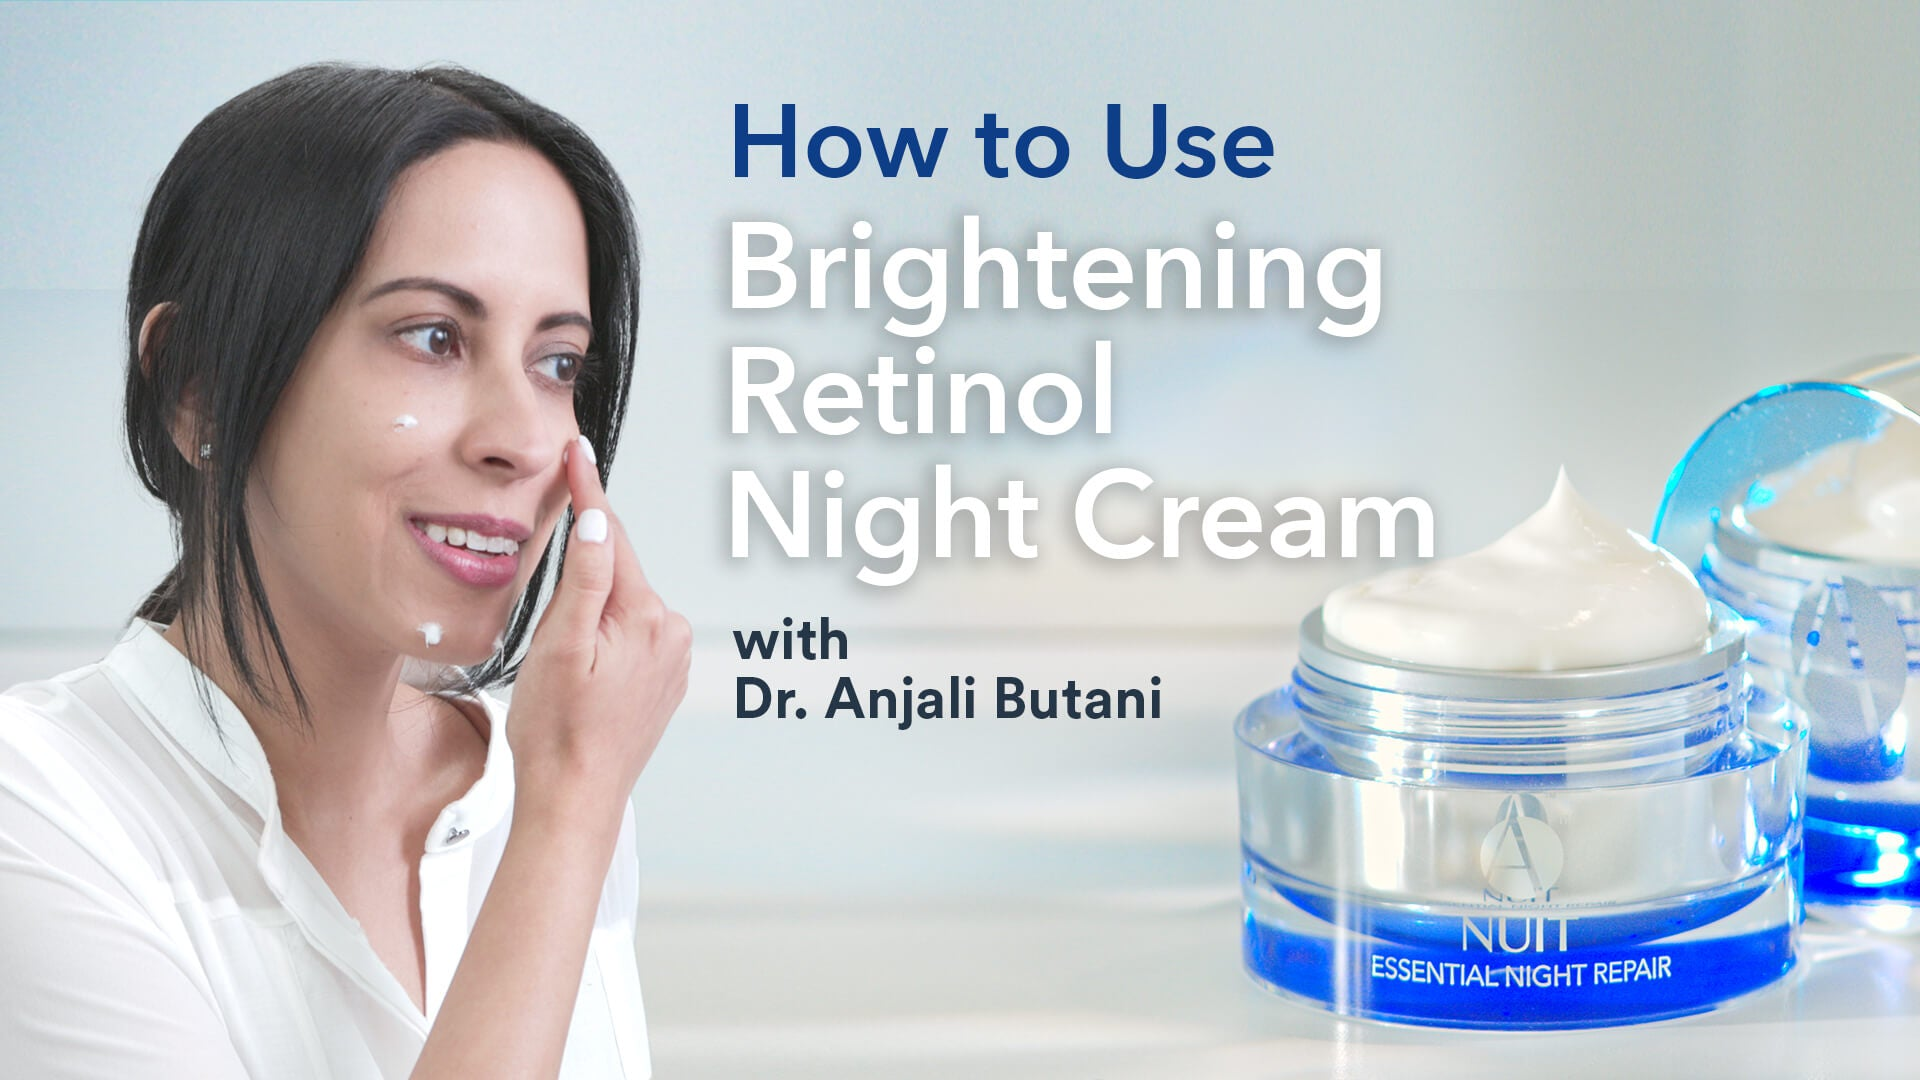 Brightening Retinol Night Cream How To Use Video